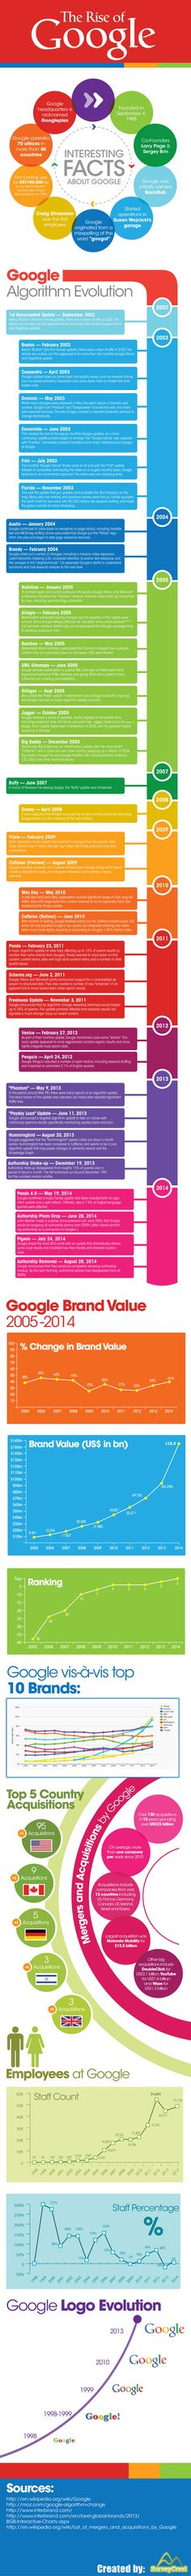 The Rise of Mighty #Google - #infographic #tech  Follow us on Pinterest and G+ http://mghty.io/1rqBZSG Check us out for custom, vanity, toll-free and local business numbers. http://mghty.io/1nYmhrR